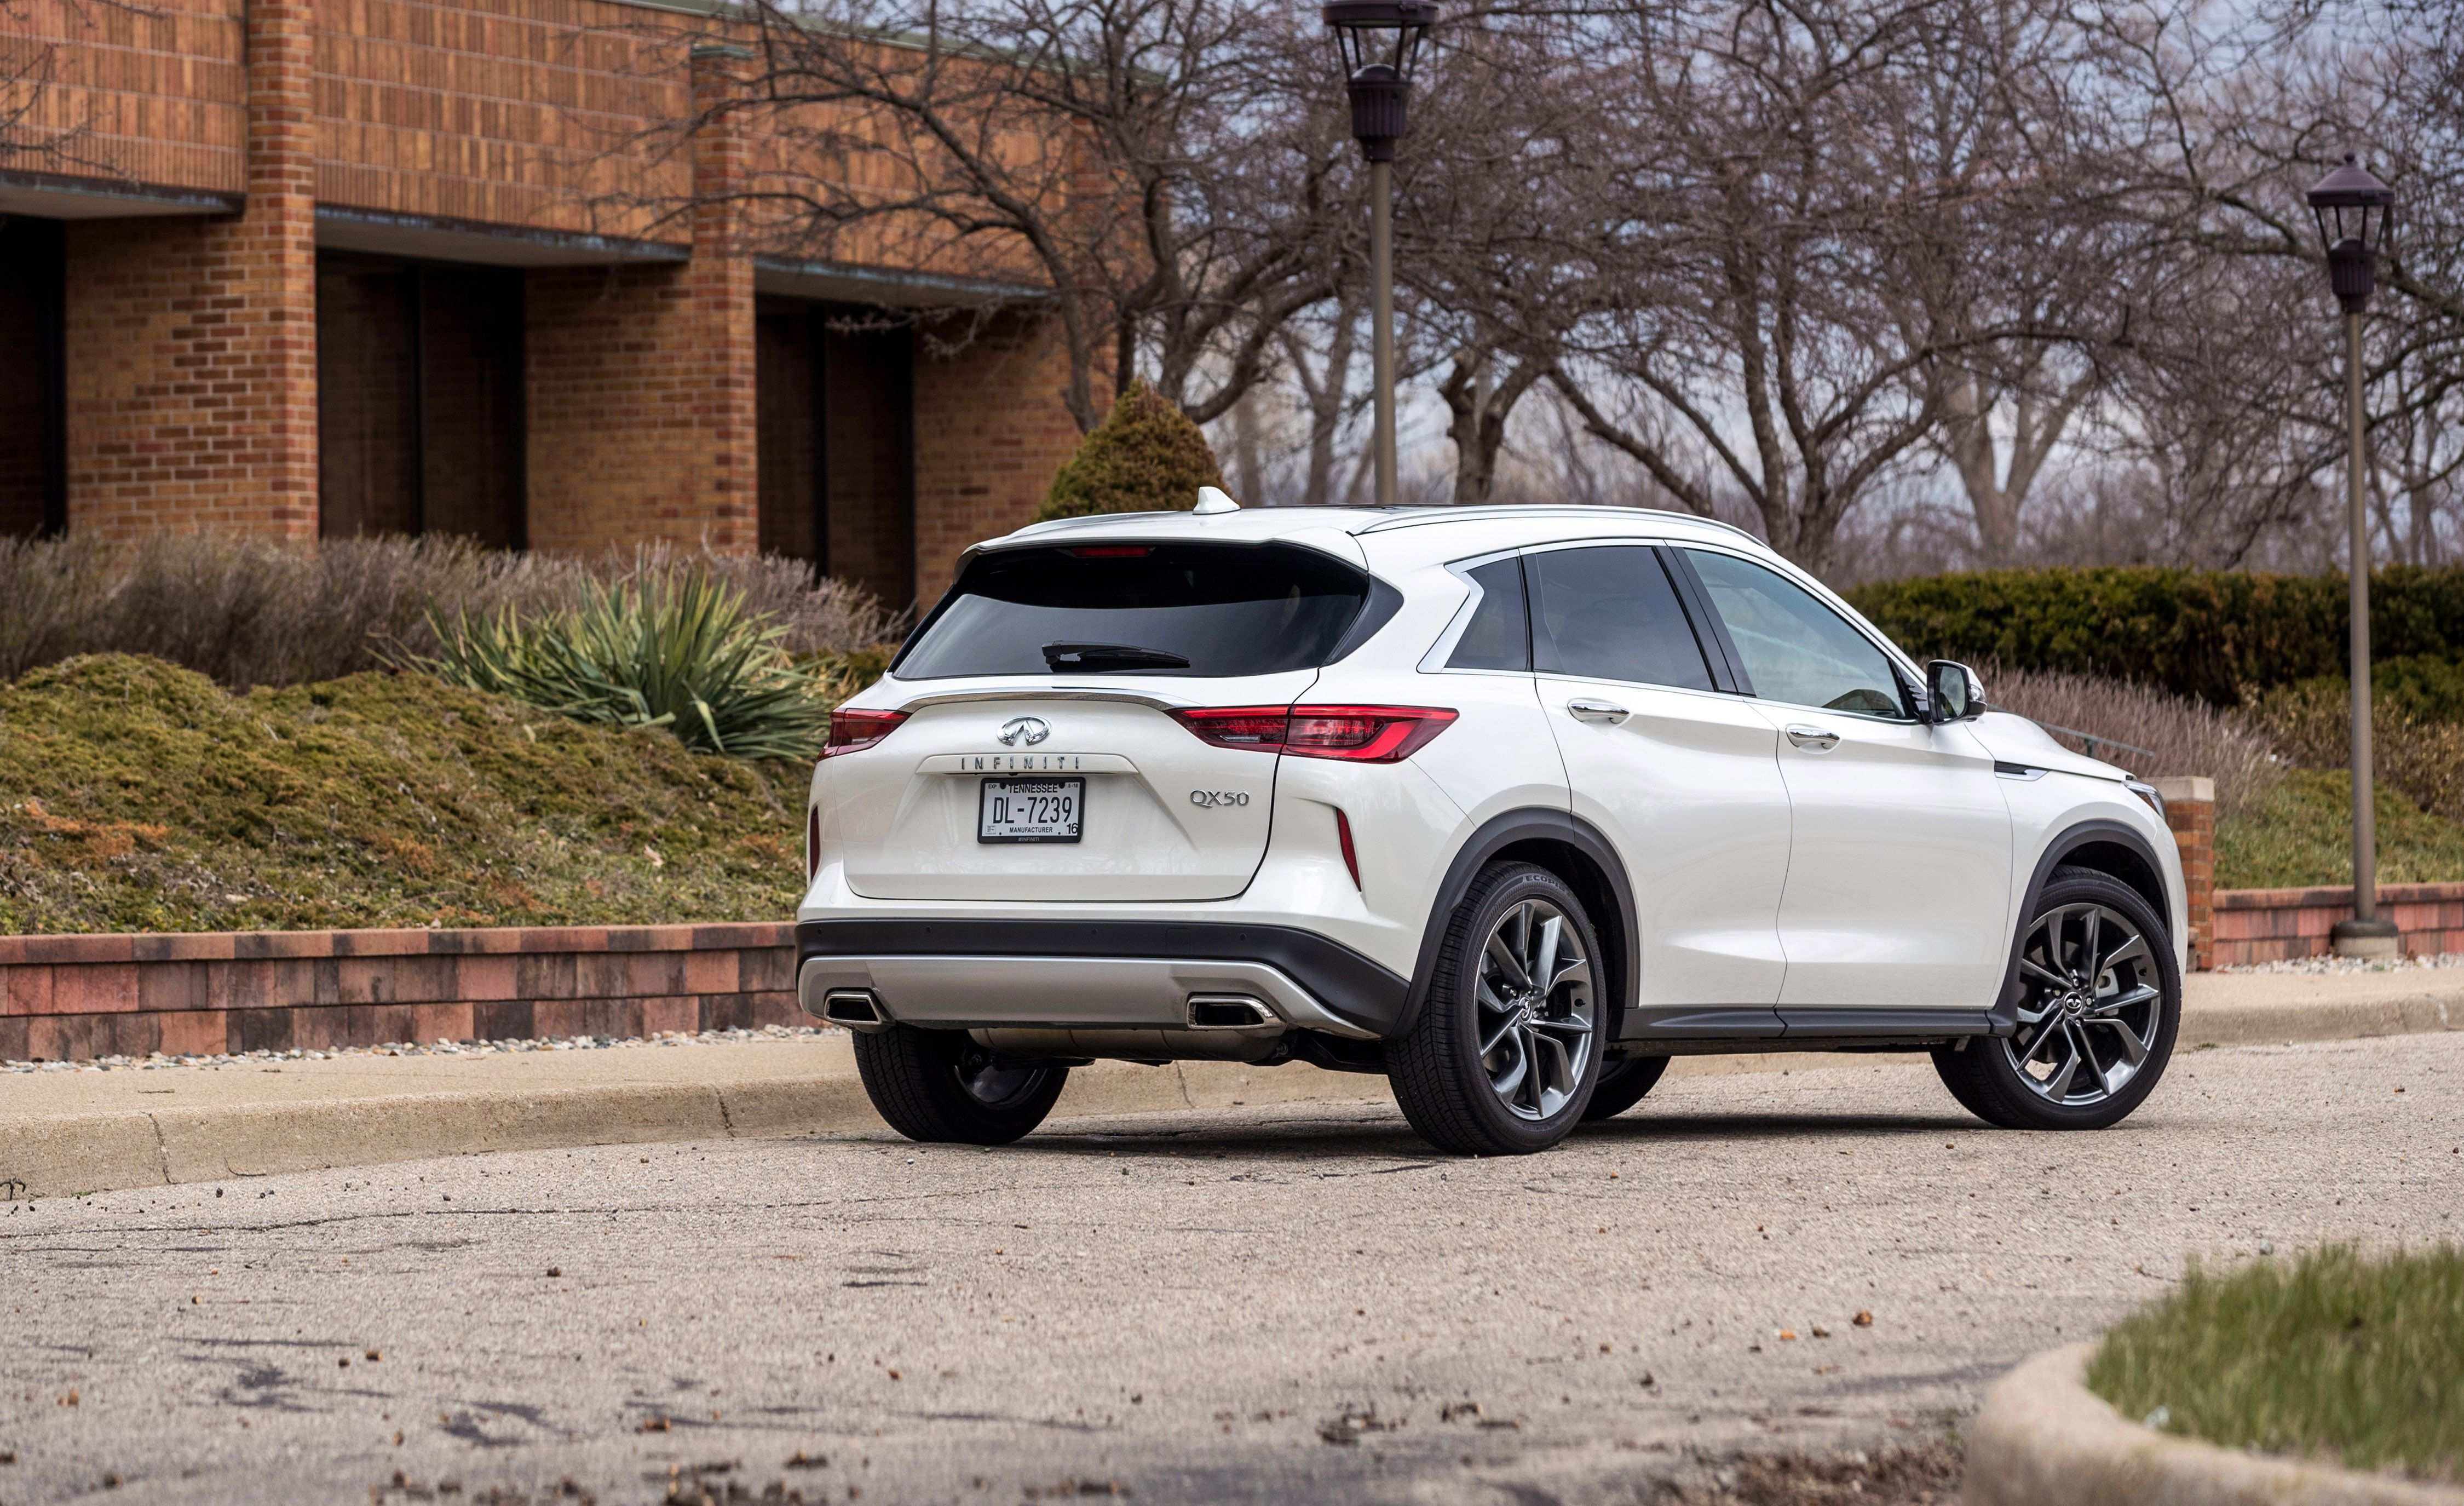 20 All New 2019 Infiniti Qx50 Wiki Style